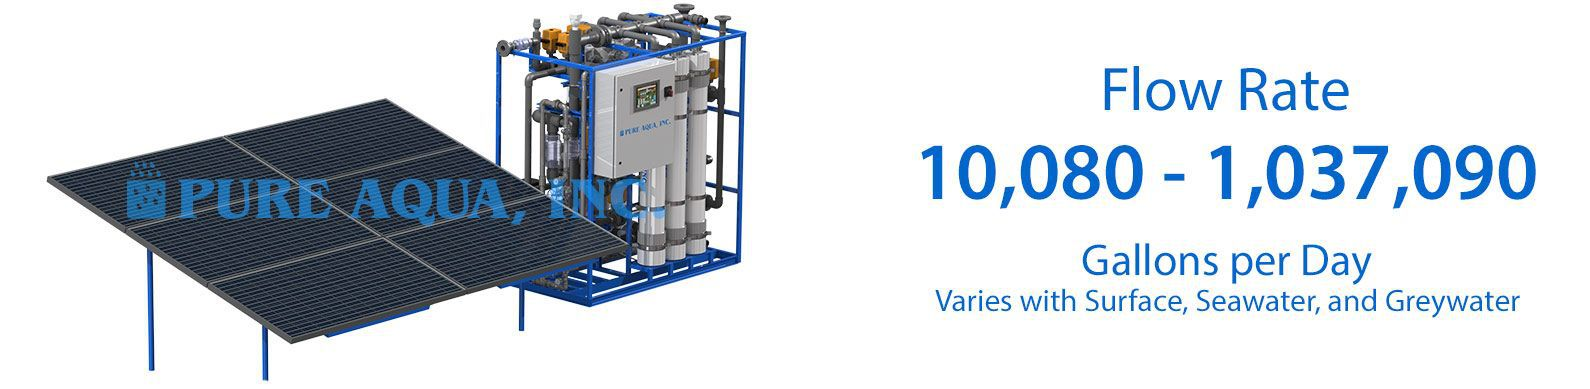 solar powered ultrafiltration UF membranes systems 10080-1037090 gpd specifications